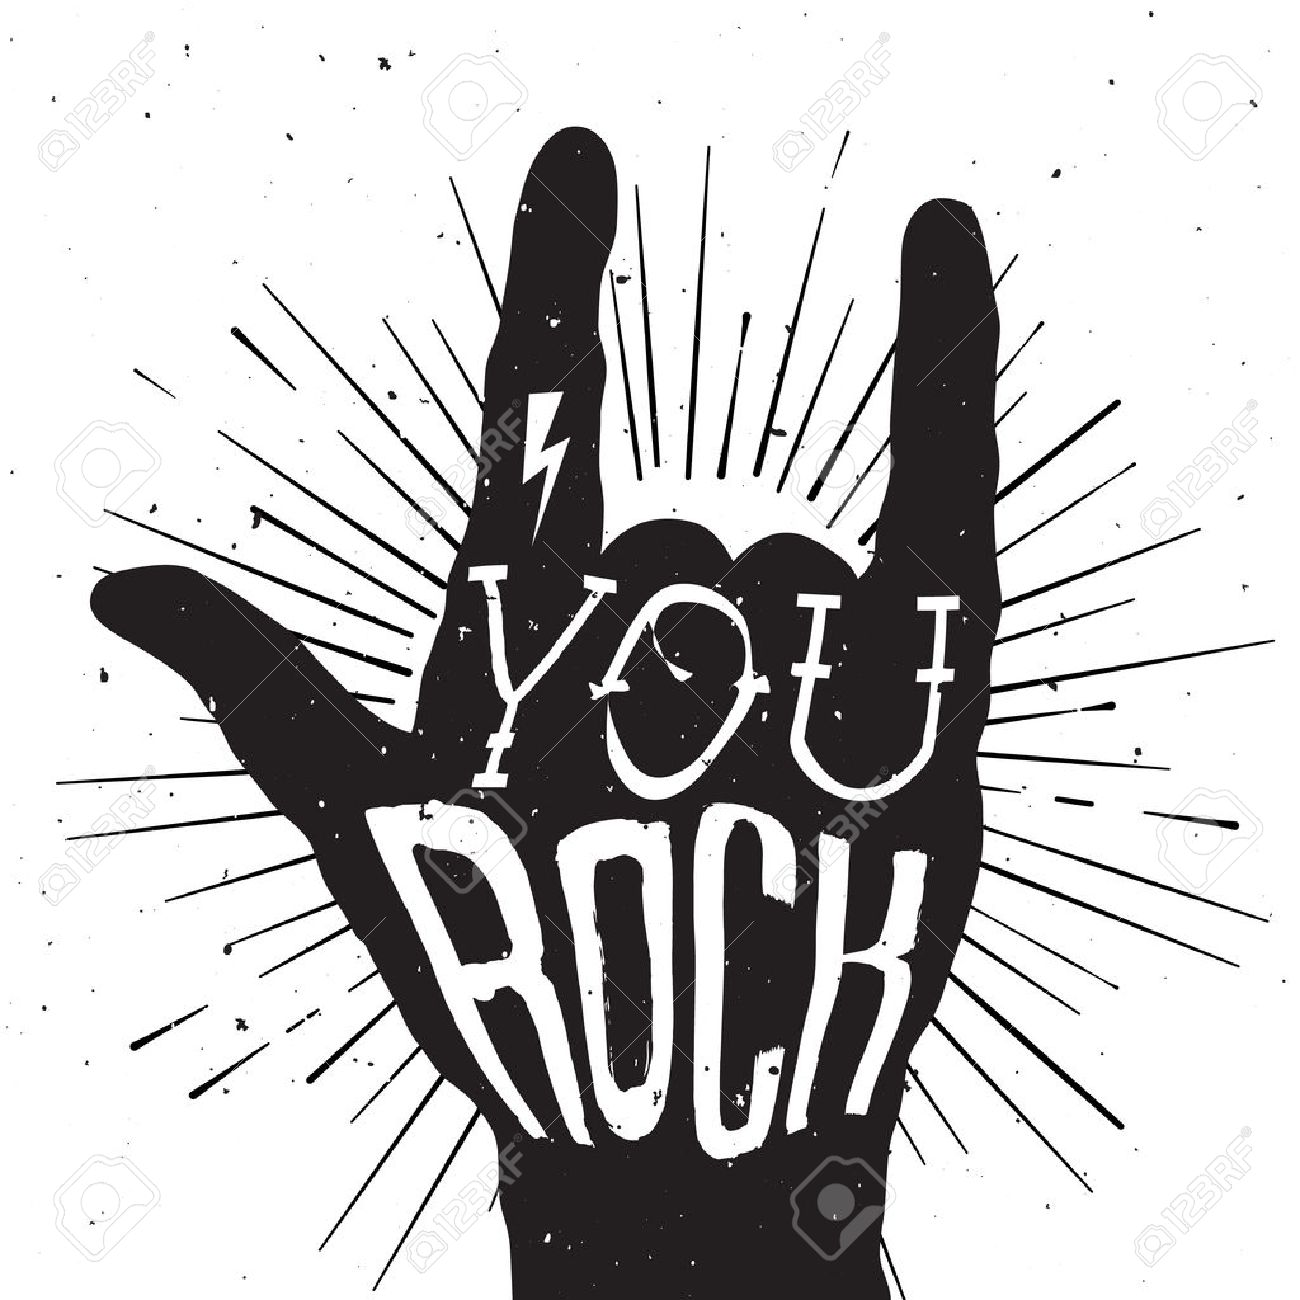 hight resolution of rock and roll clipart black and white 4